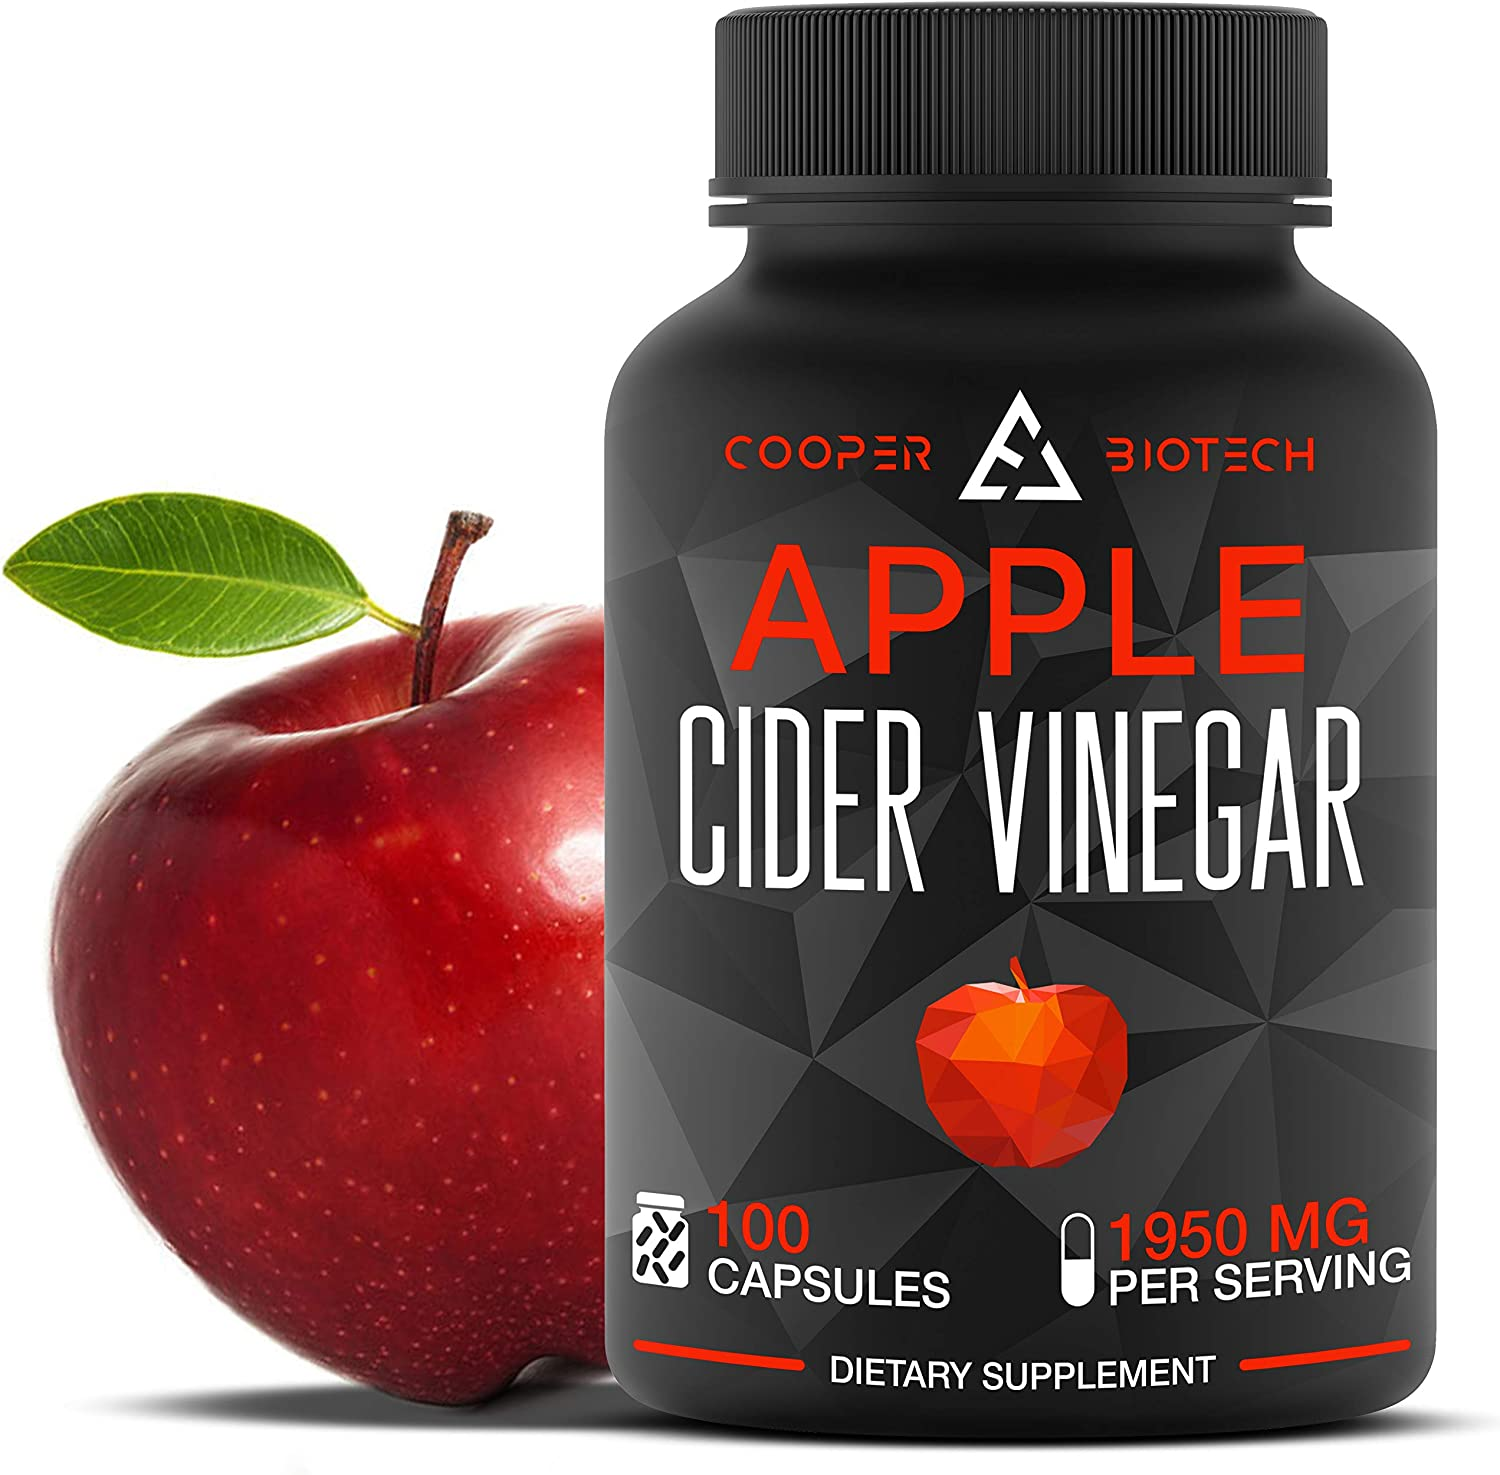 Apple Cider Vinegar Capsules - 100 Capsules 2250 MG - Organic Apple Cider Vinegar Pills for Cleanse and Detox - ACV Supplement for Immune System and Digestive Health Support